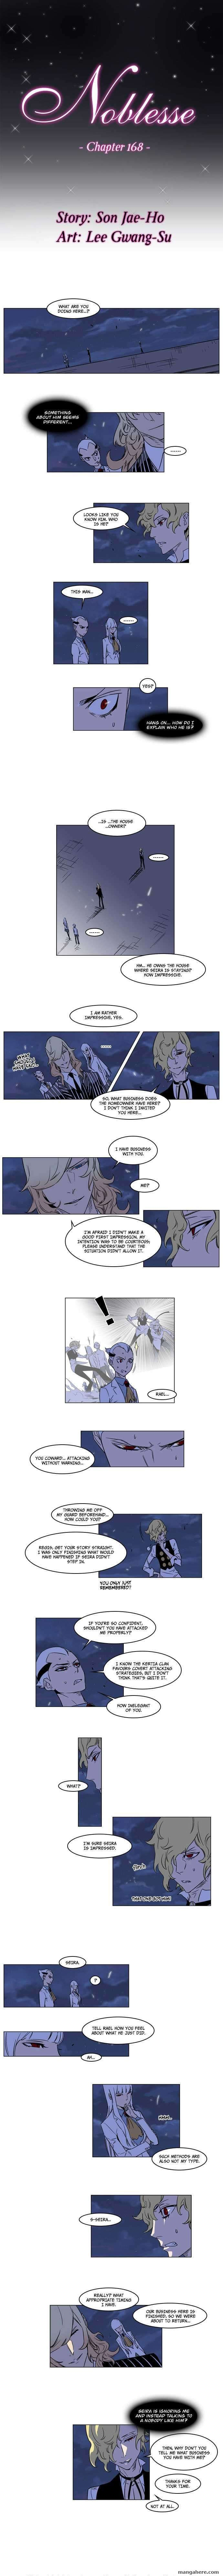 Noblesse 168 Page 2